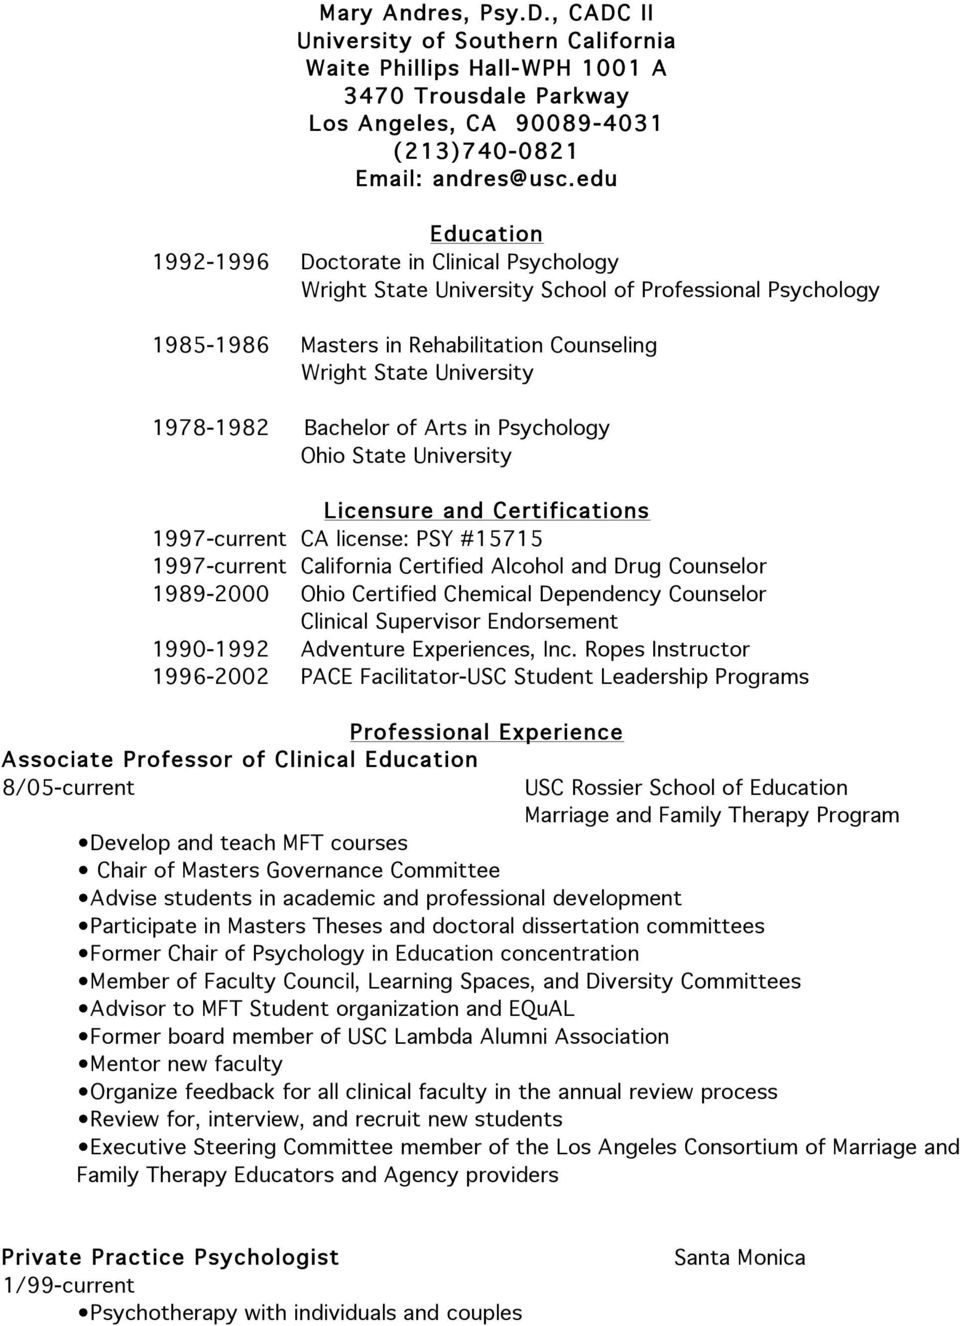 Bachelor of Arts in Psychology Ohio State University Licensure and Certifications 1997-current CA license: PSY #15715 1997-current California Certified Alcohol and Drug Counselor 1989-2000 Ohio